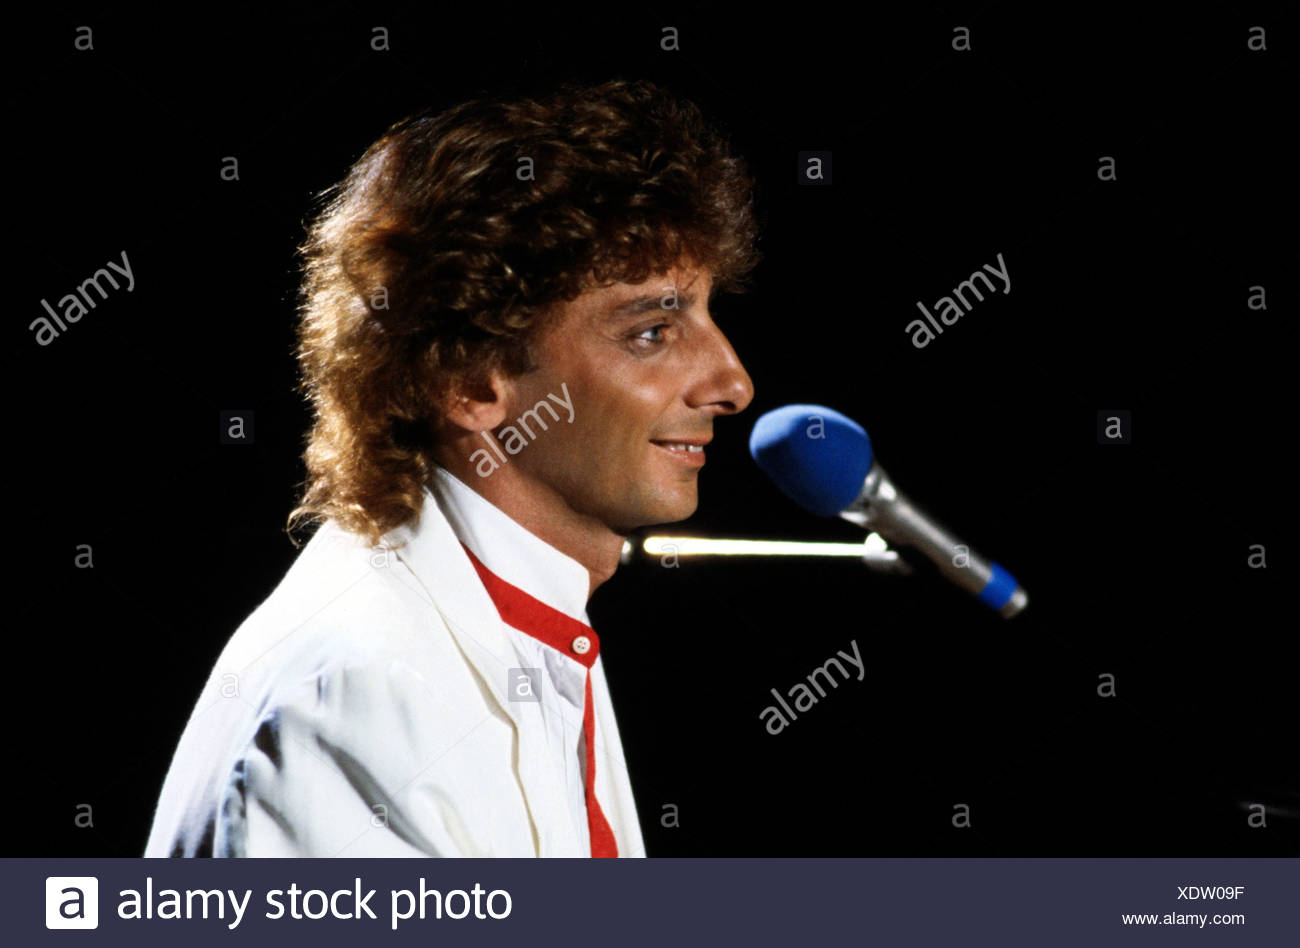 Manilow, Barry (born Barry Alan Pincus), * 17.6.1946, US musician, portrait, during a concert, 1983, microphone, profile, side f - Stock Image